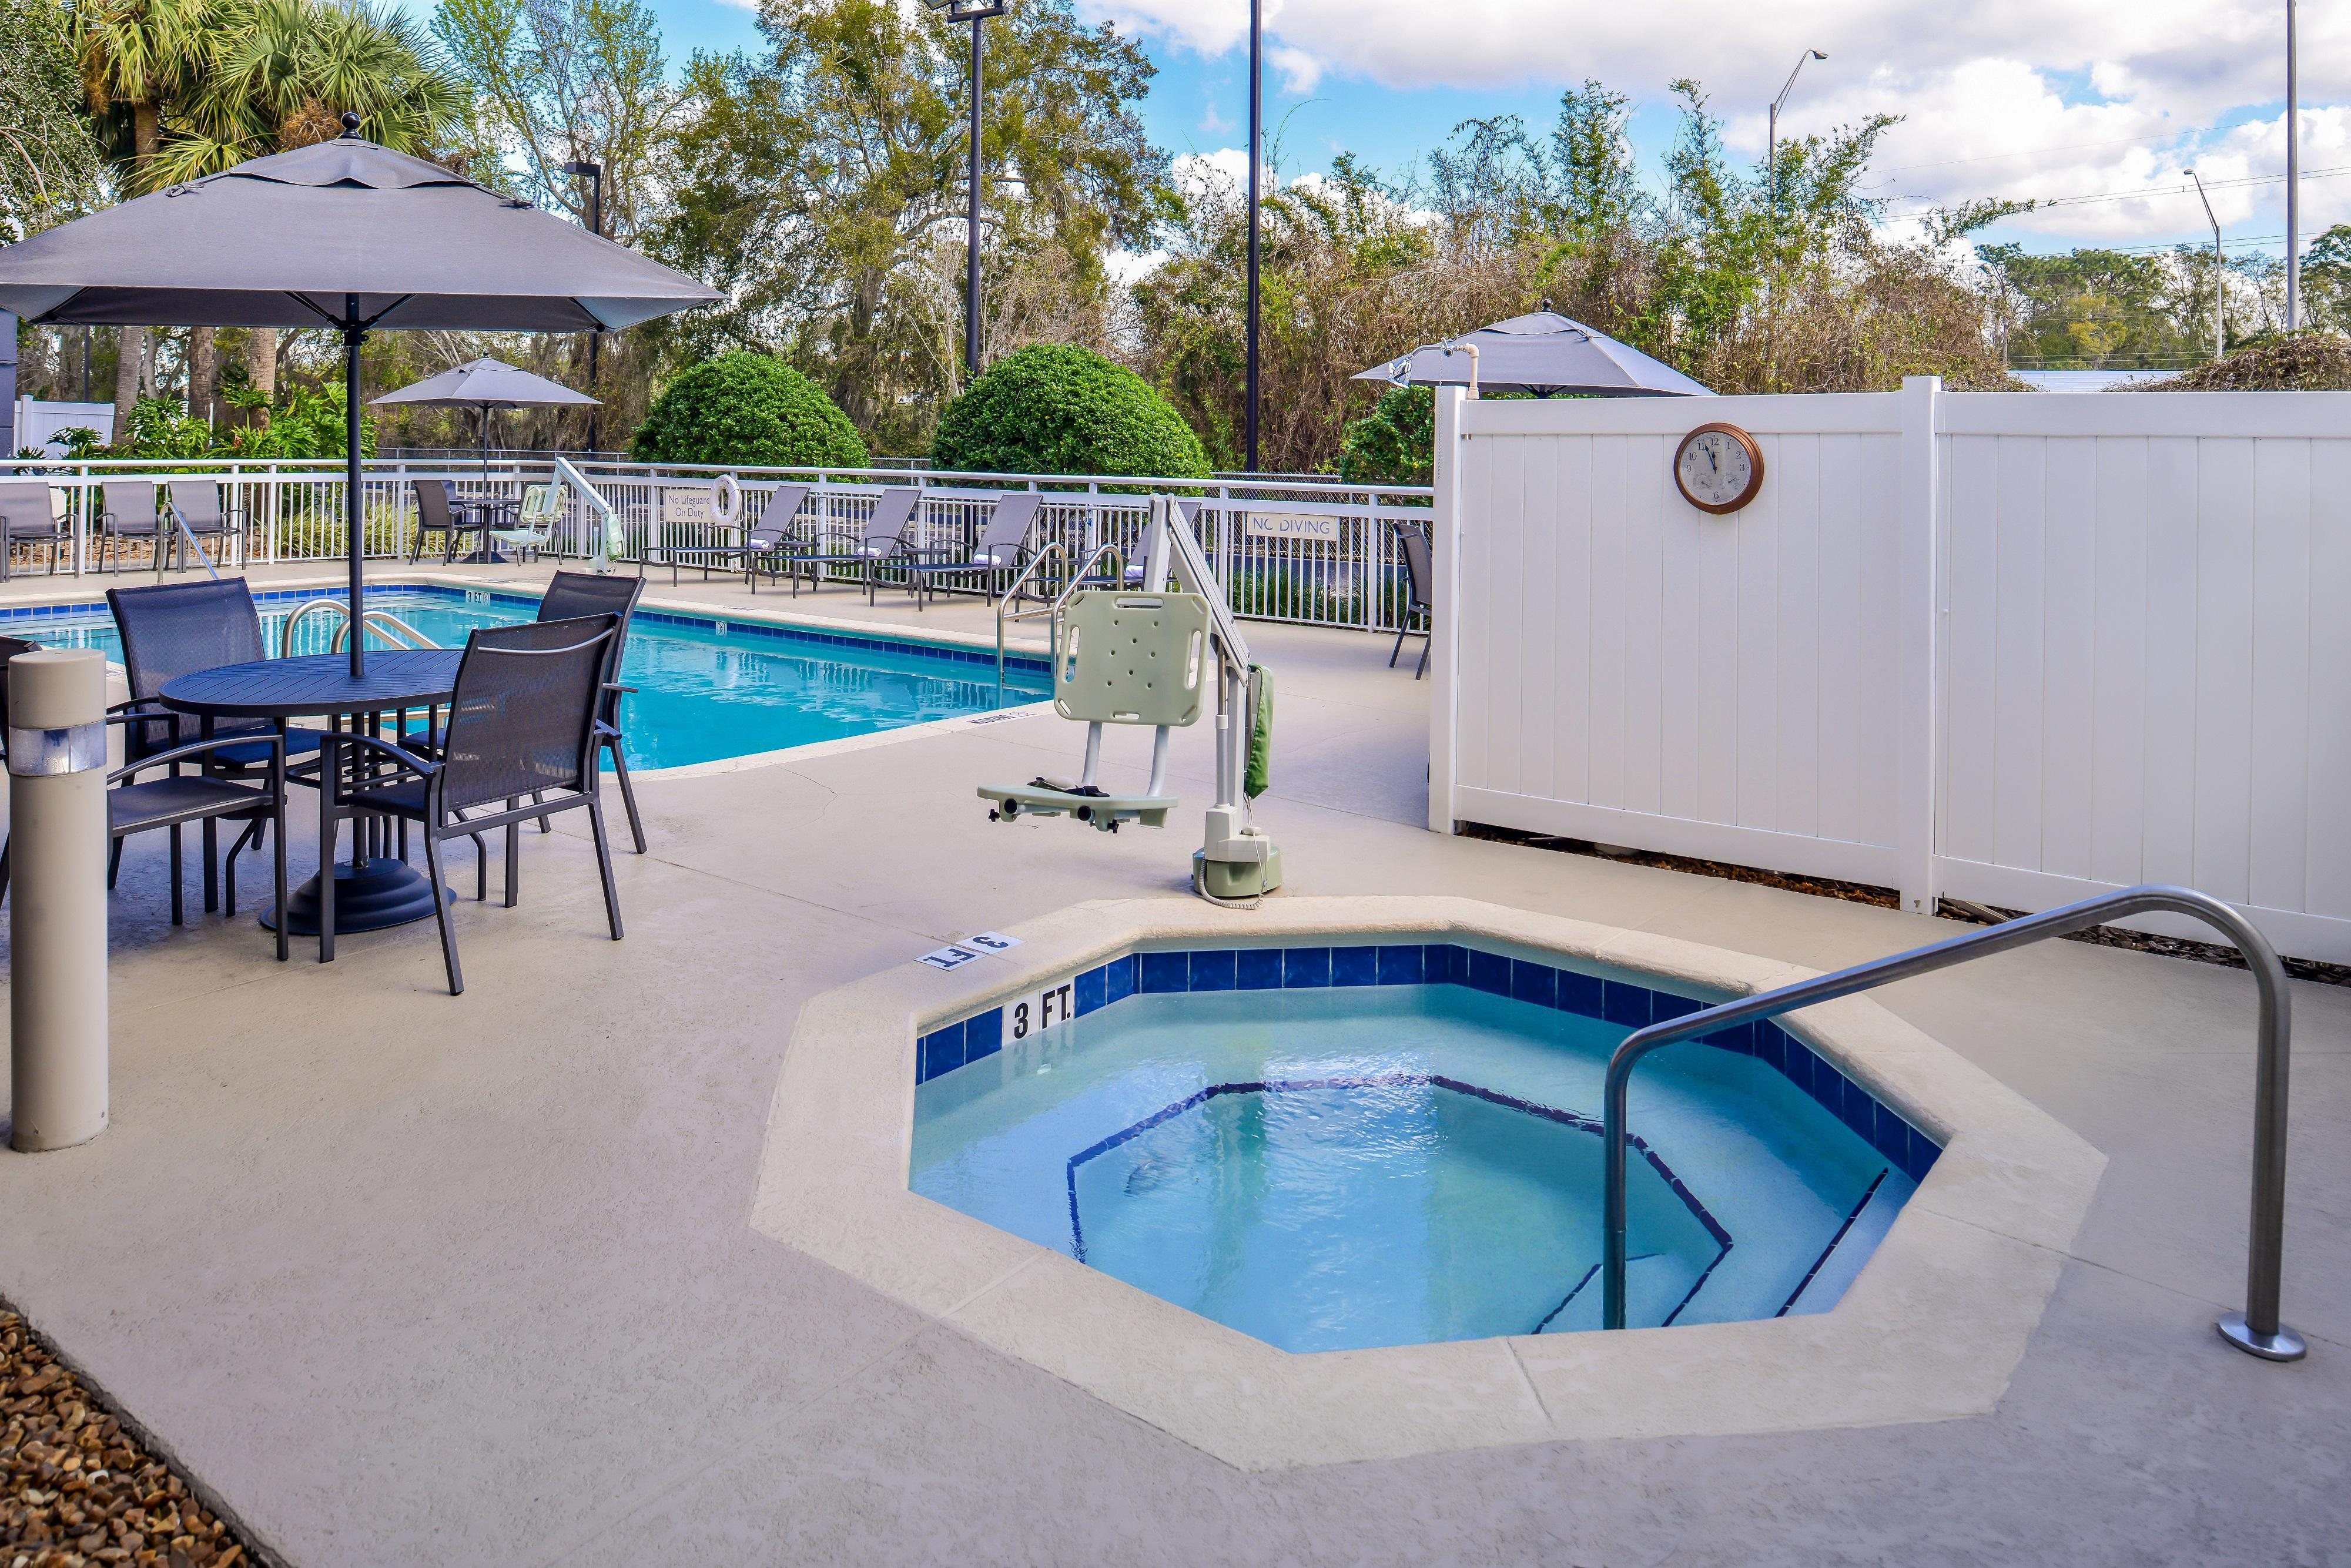 Fairfield Inn & Suites by Marriott Ocala image 7